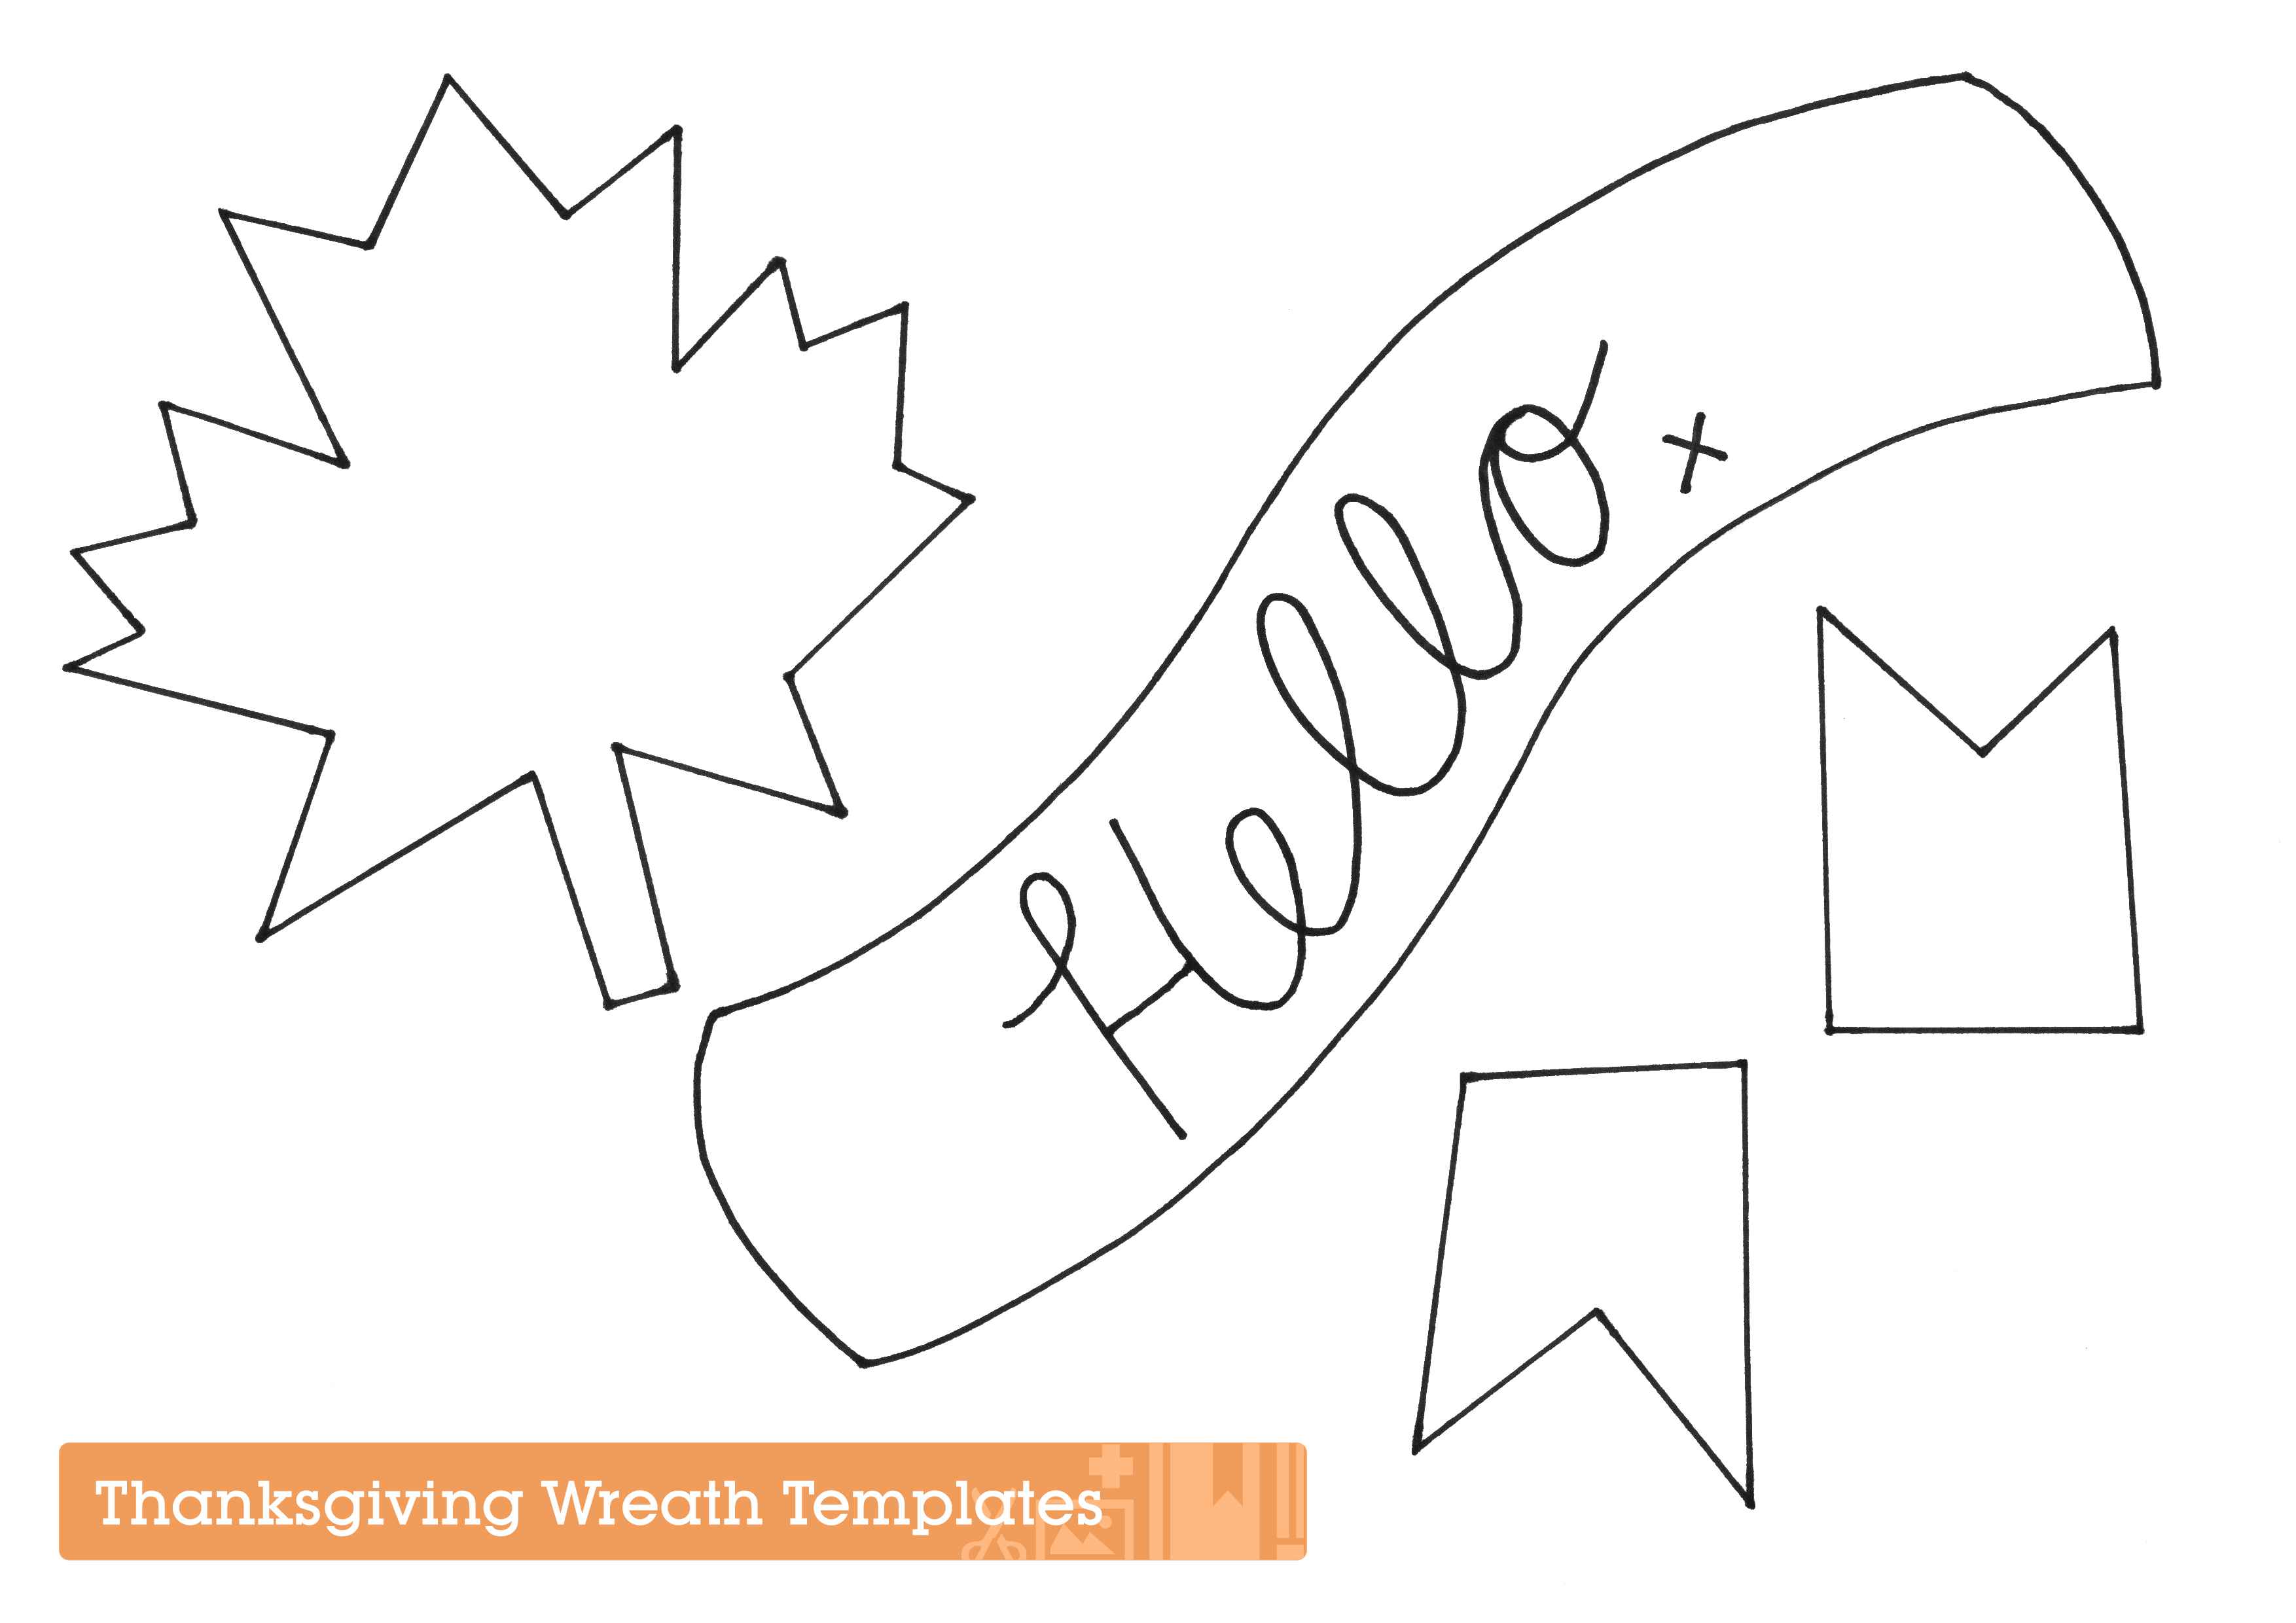 Shape templates for festive Thanksgiving wreath